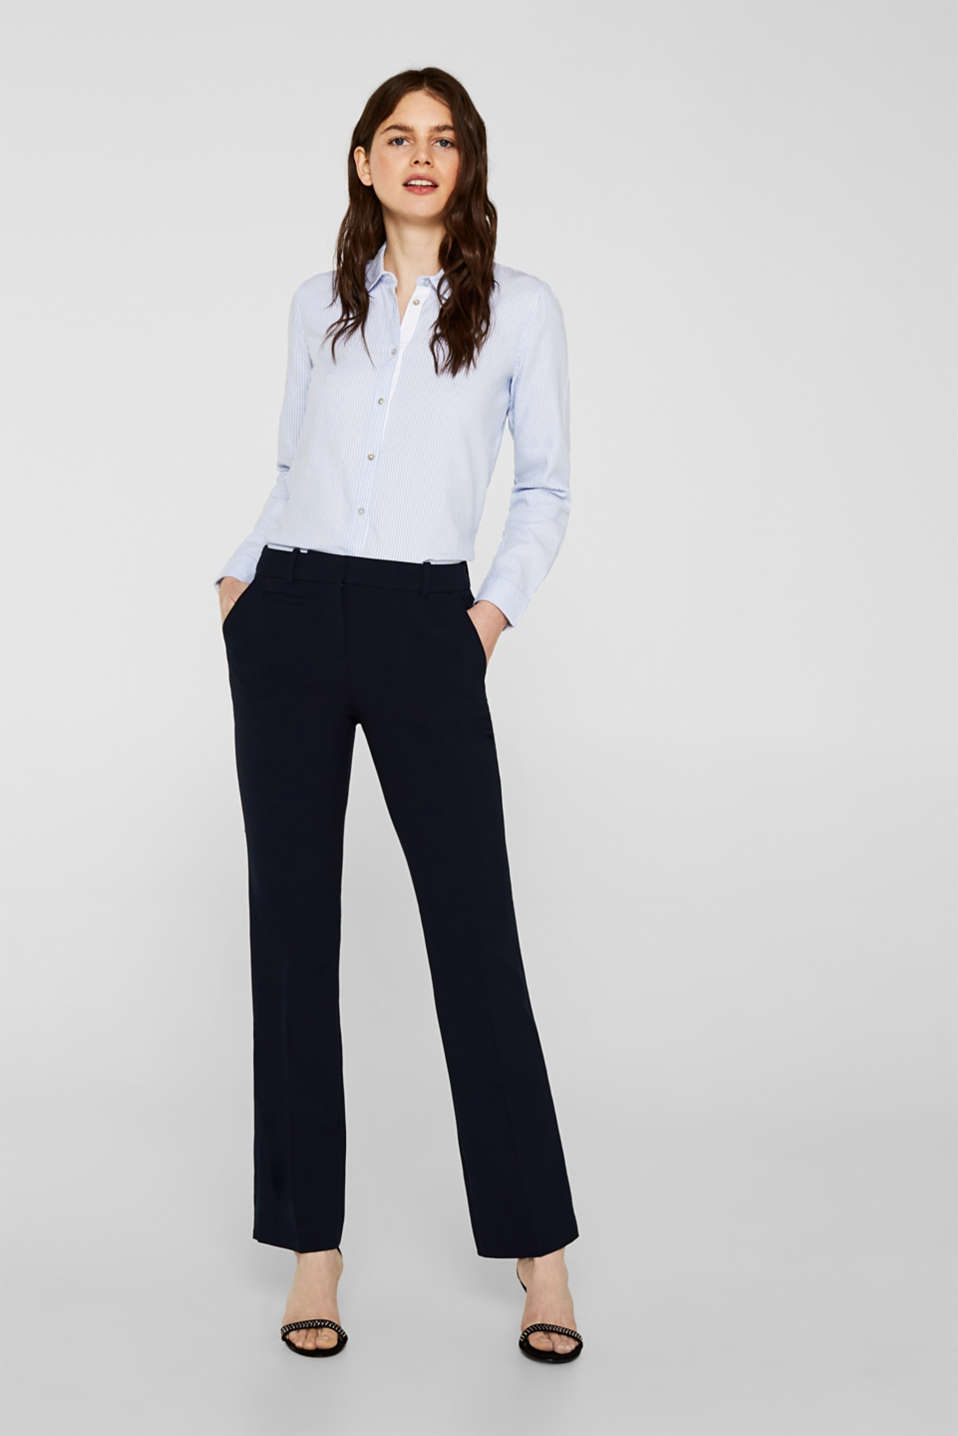 Esprit - Business trousers with stretch for comfort